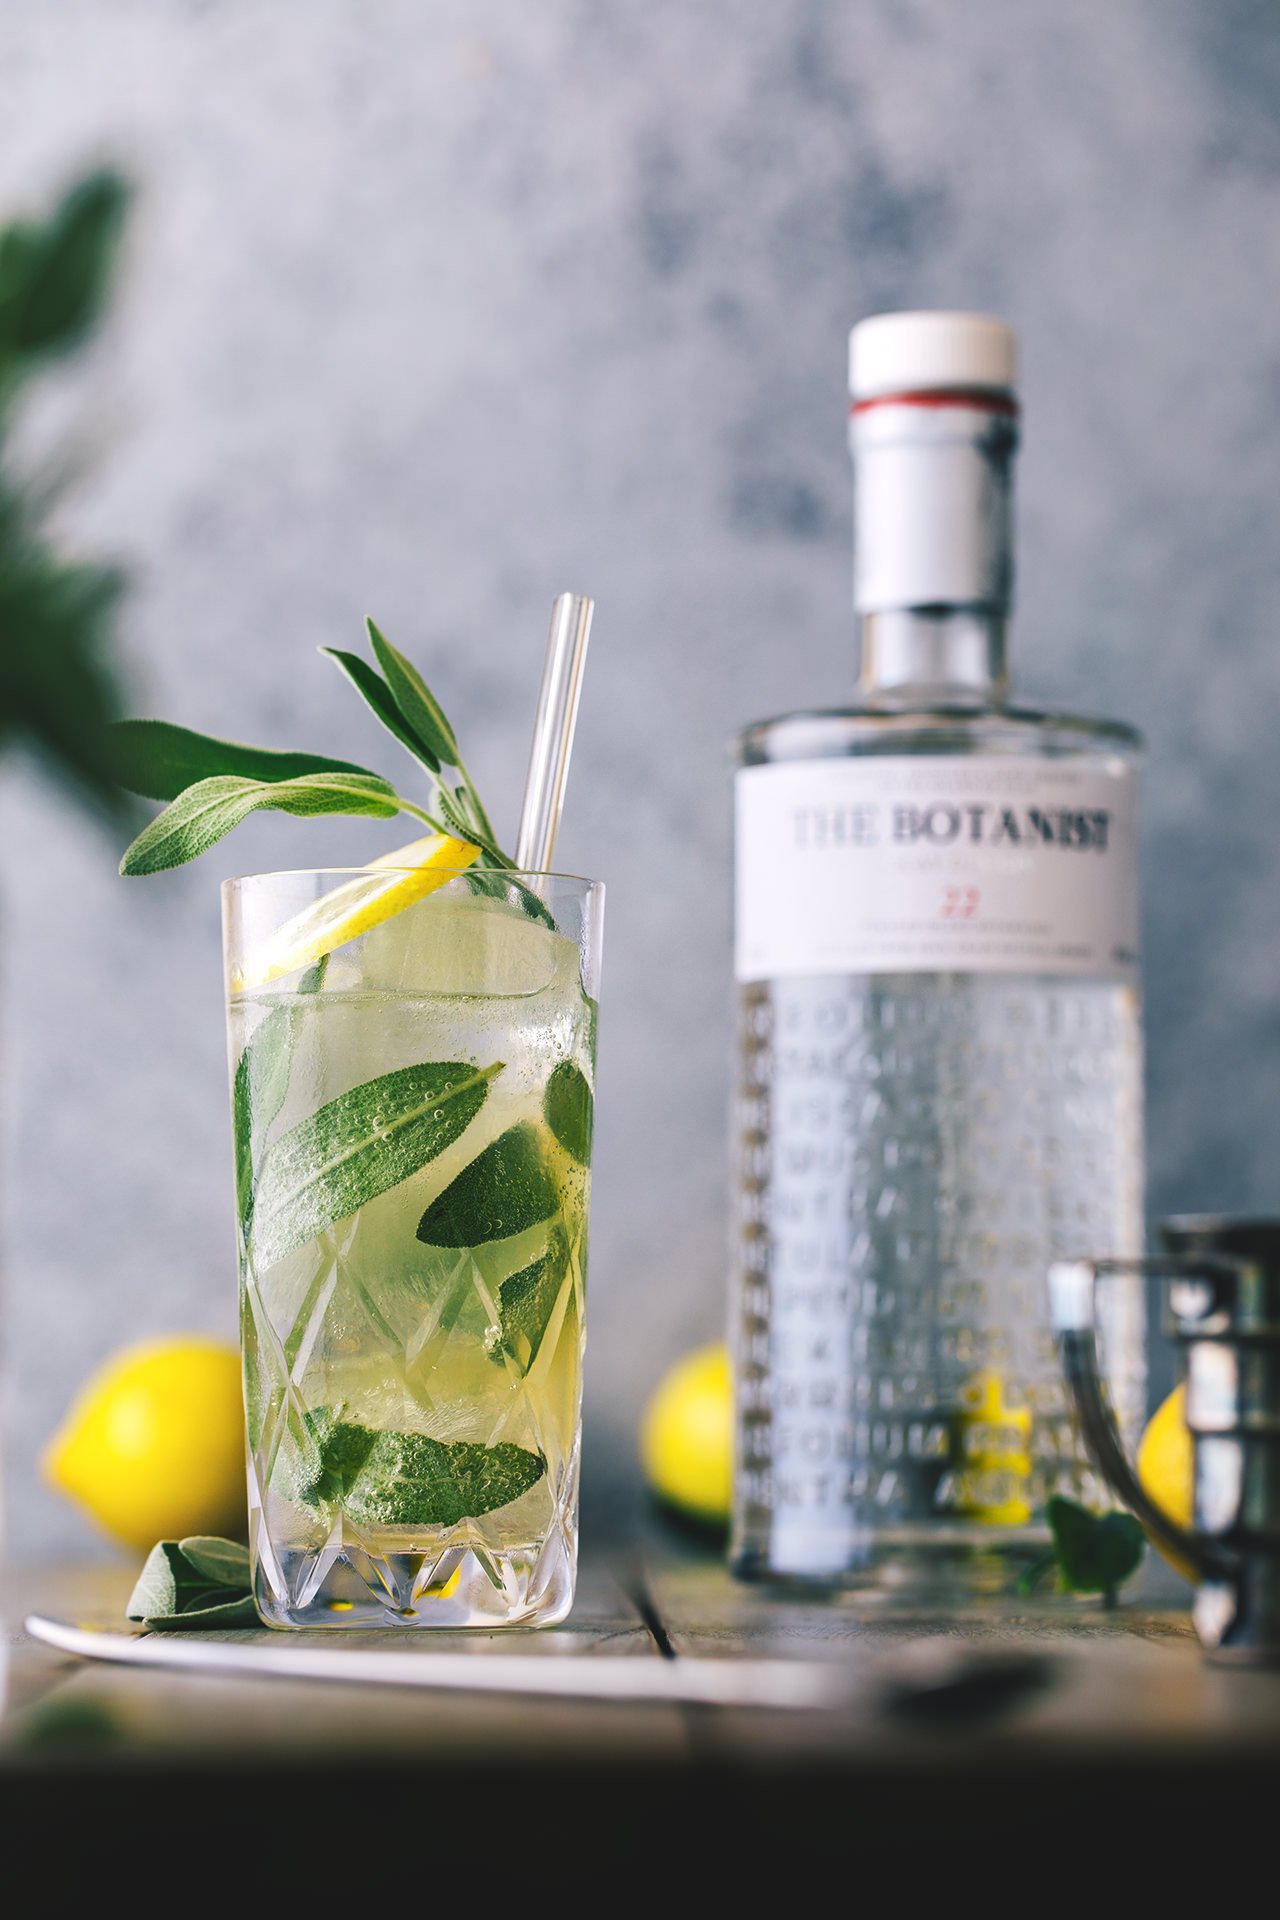 Sage Spritz | Be The Botanist by HonestlyYUM (honestlyyum.com)